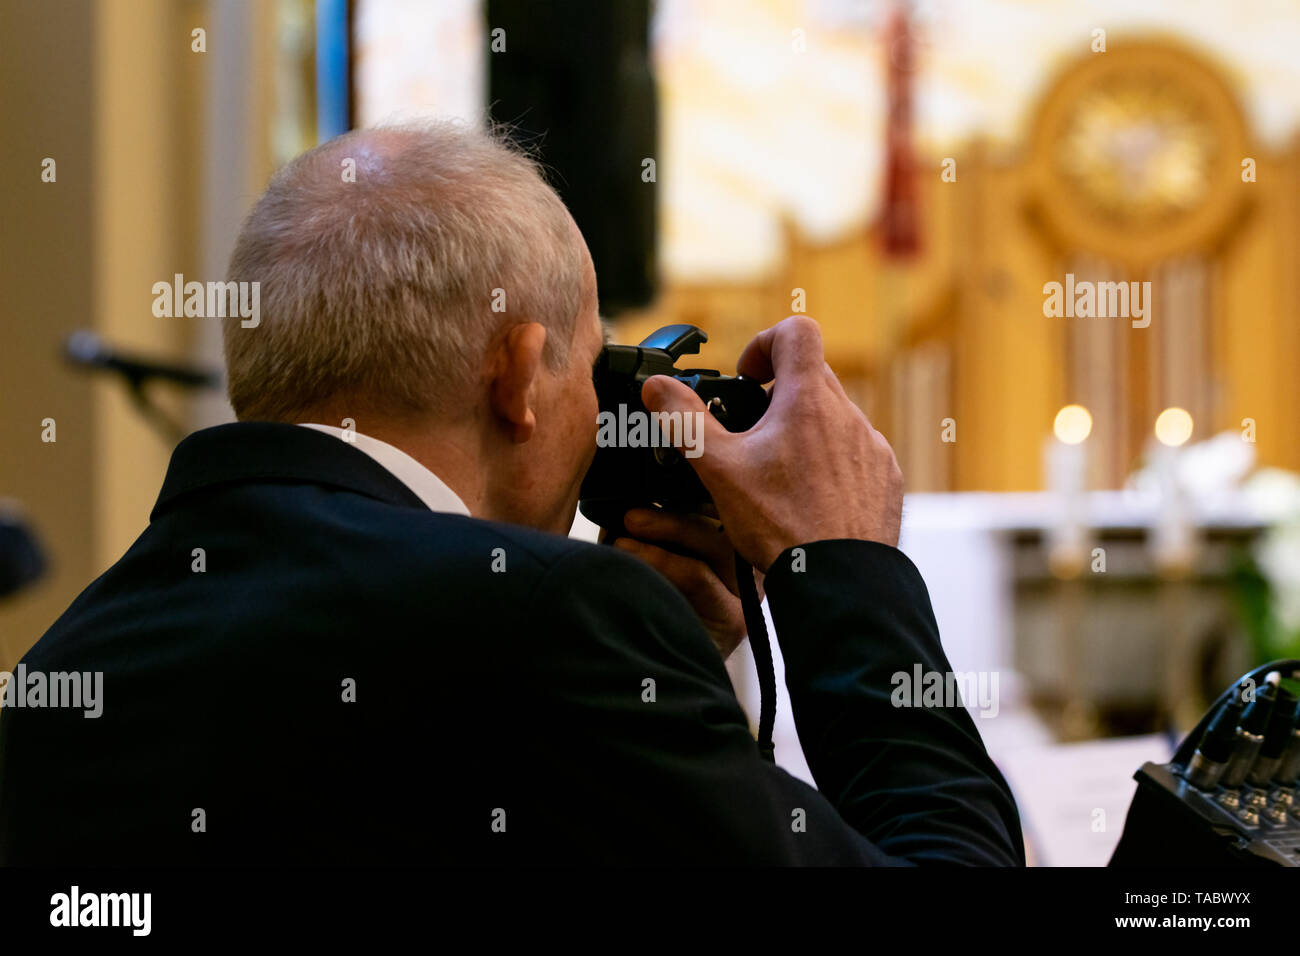 A gray-haired man in a suit takes pictures during church ceremonies. Shot from the back, blurry altar in the background. - Stock Image